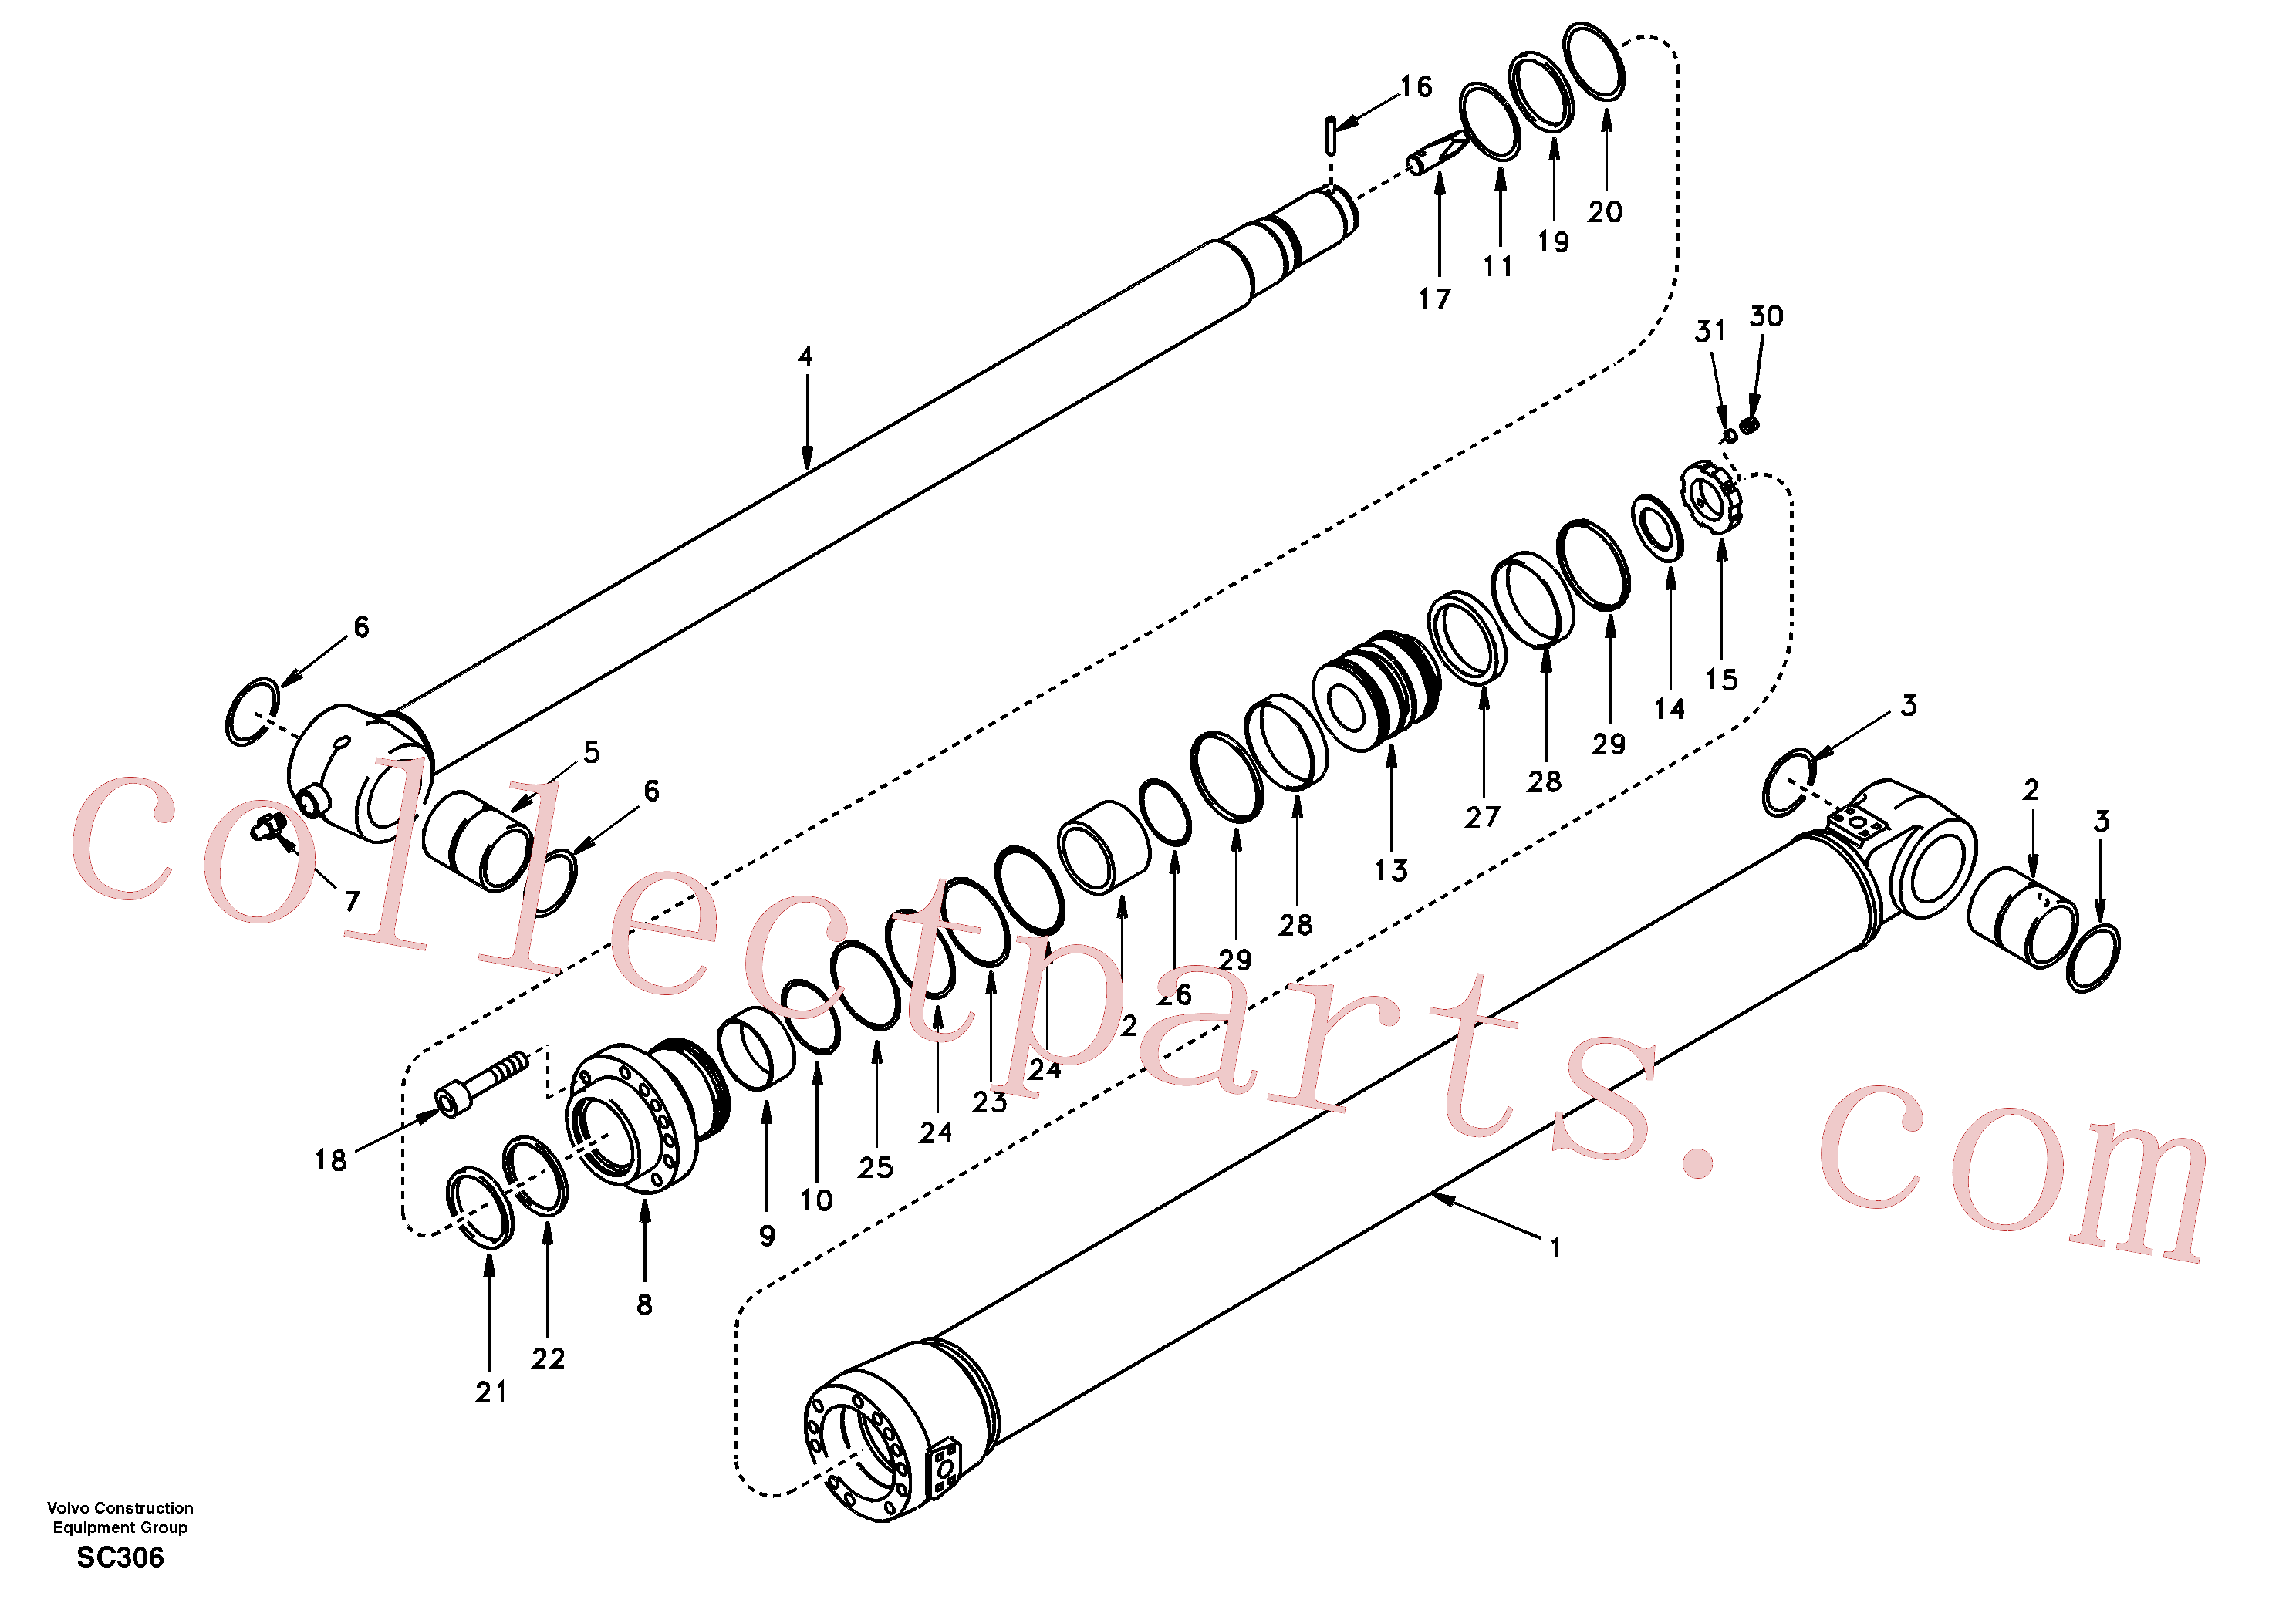 VOE14589651 for Volvo Dipper arm cylinder(SC306 assembly)